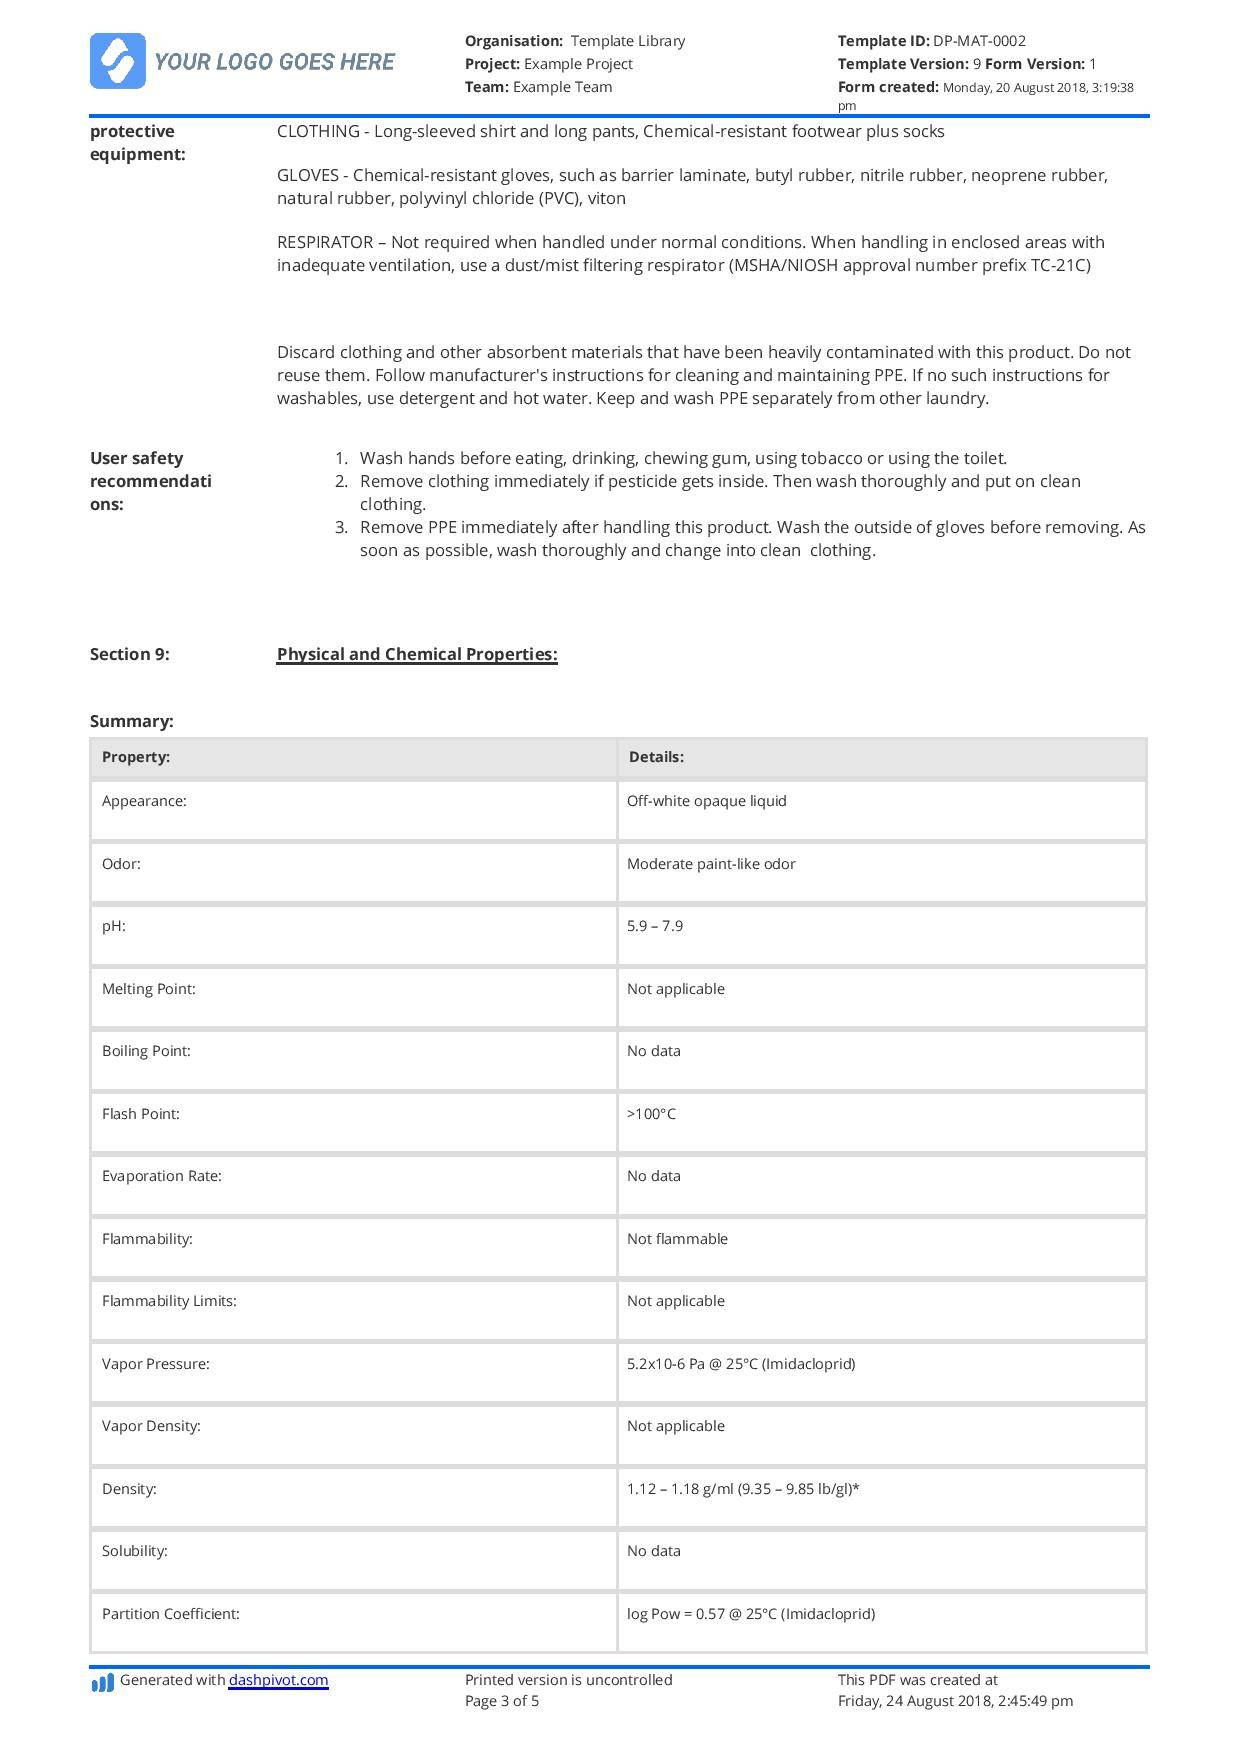 Material Safety Data Sheet (msds) Template - Templates